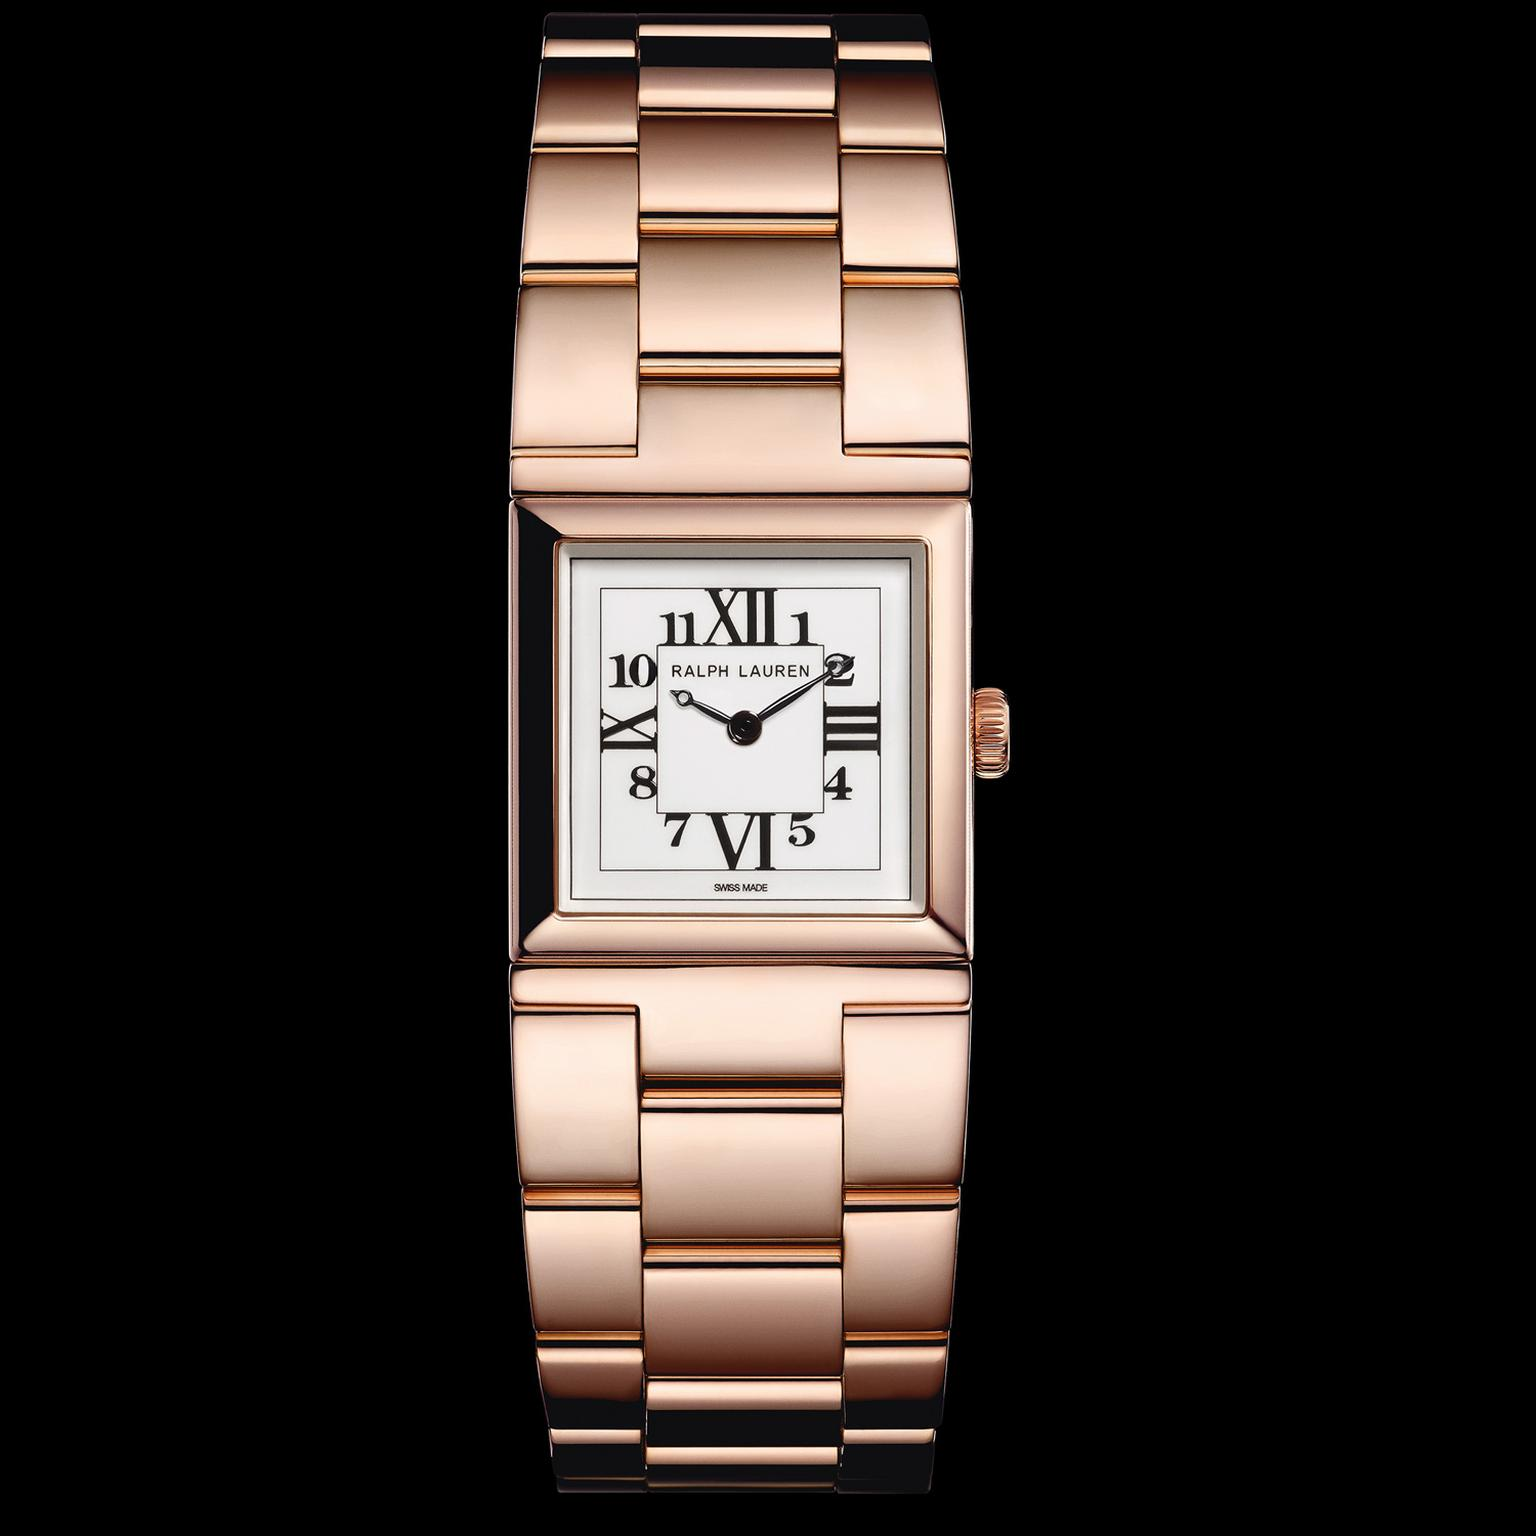 Ralph Lauren 867 petite rose gold watch